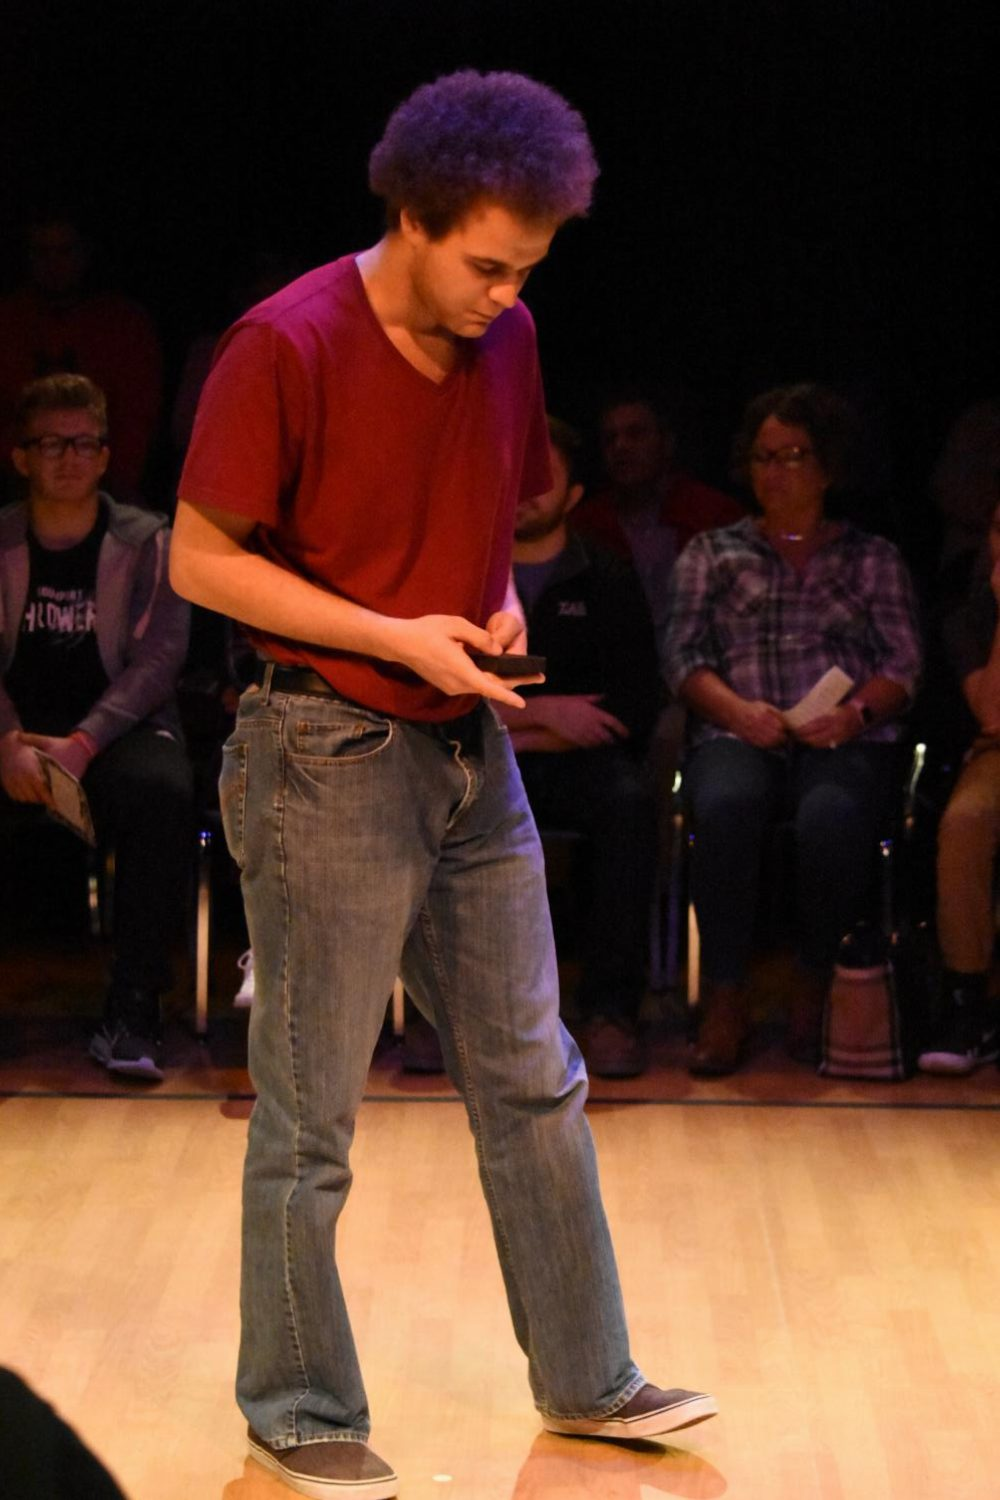 Senior Ryan Pennington texts on his phone during the production of subText.